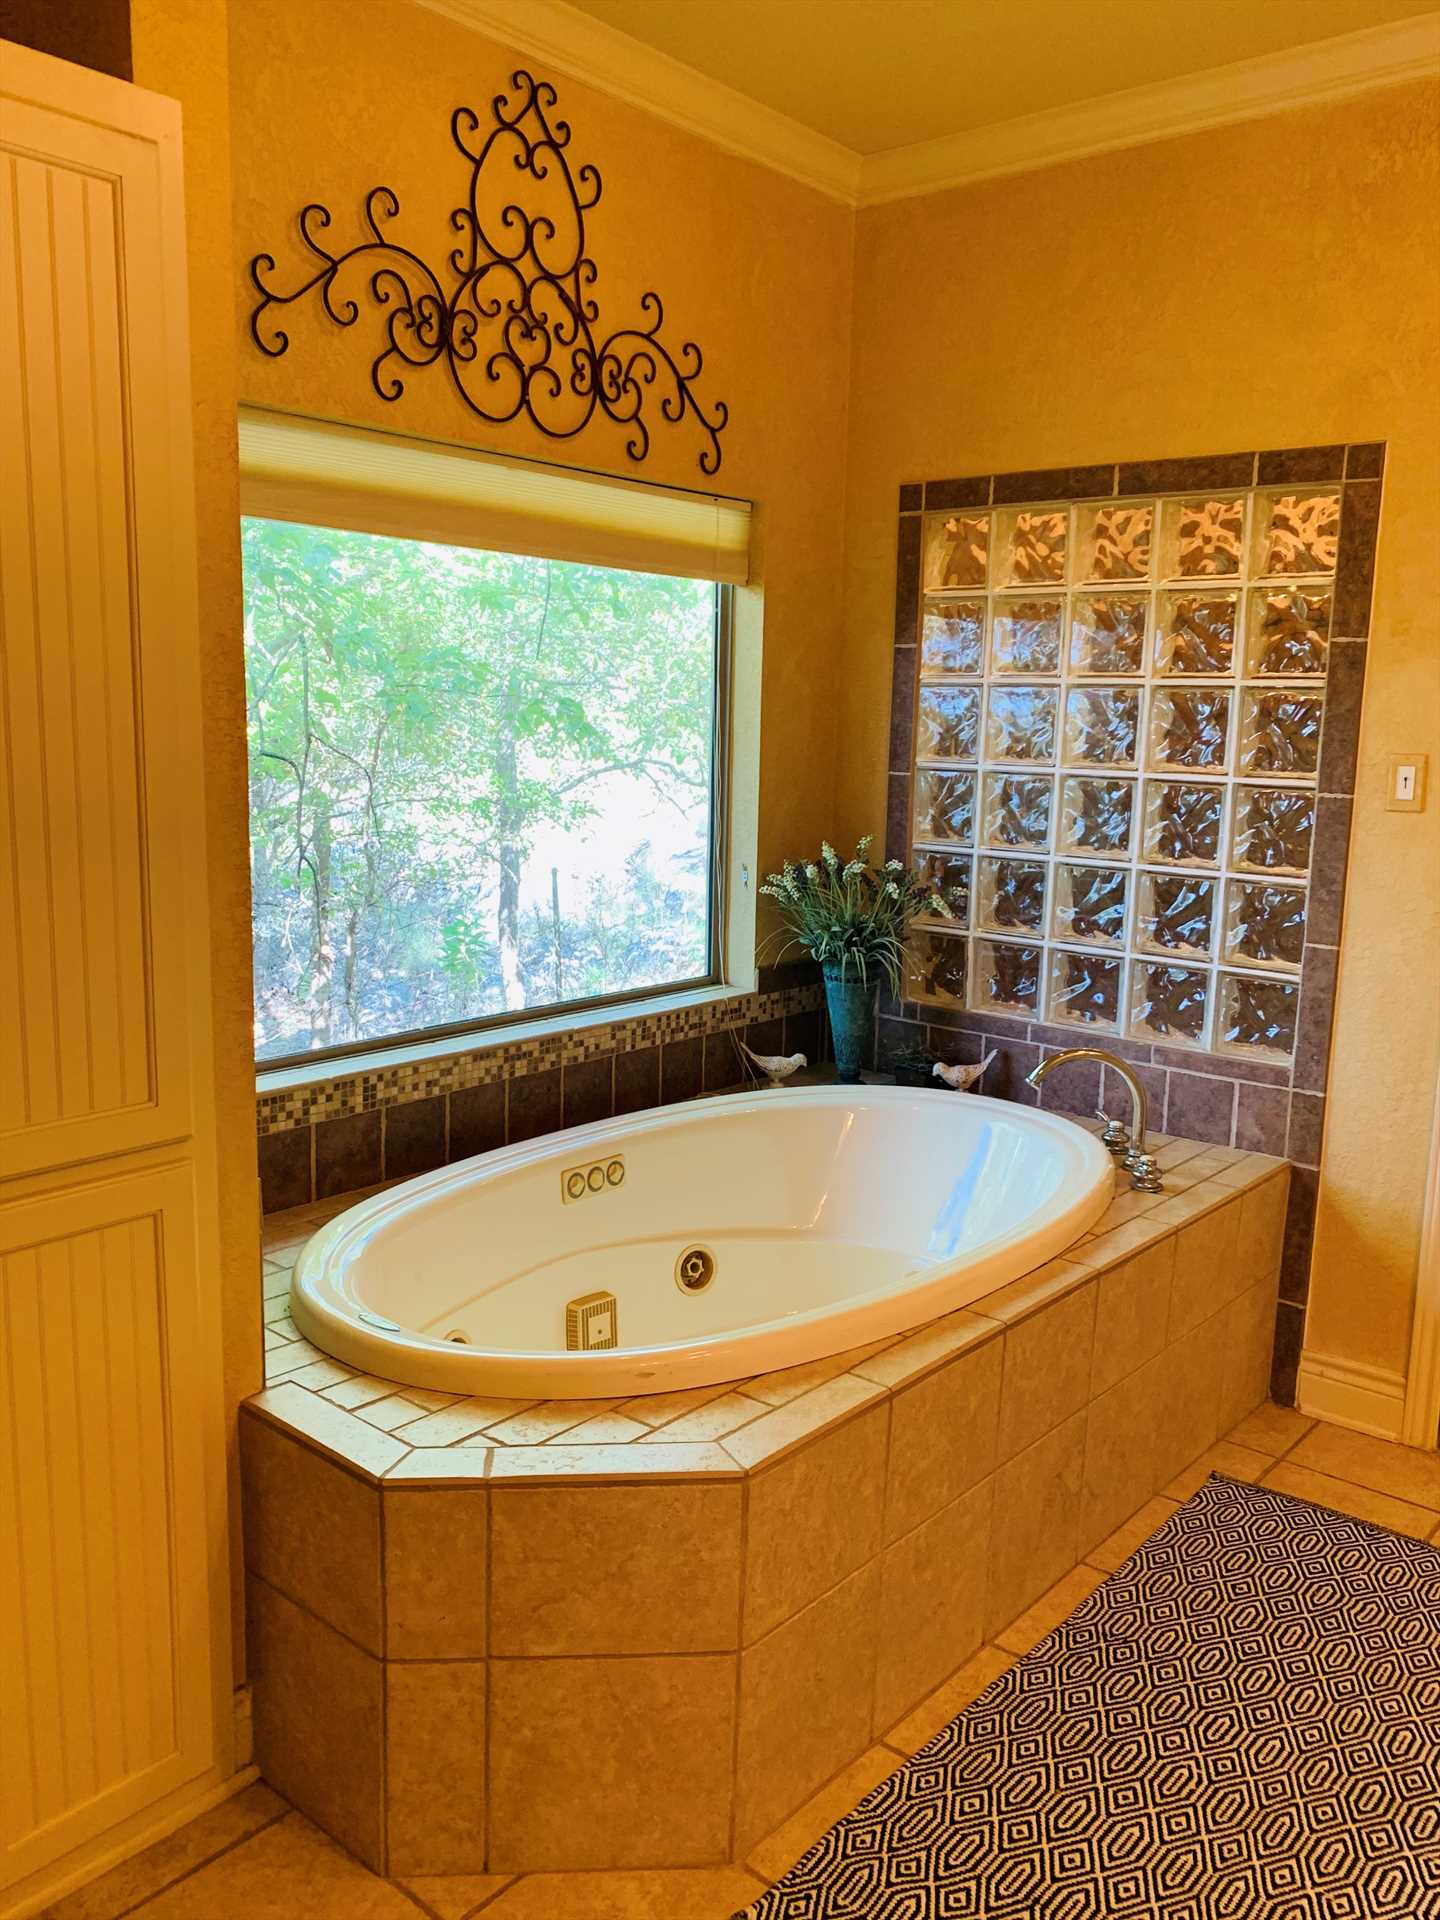 The Retreat has two-and-a-half baths, but there may be some friendly competition for access to the master bath's jacuzzi-style tub!